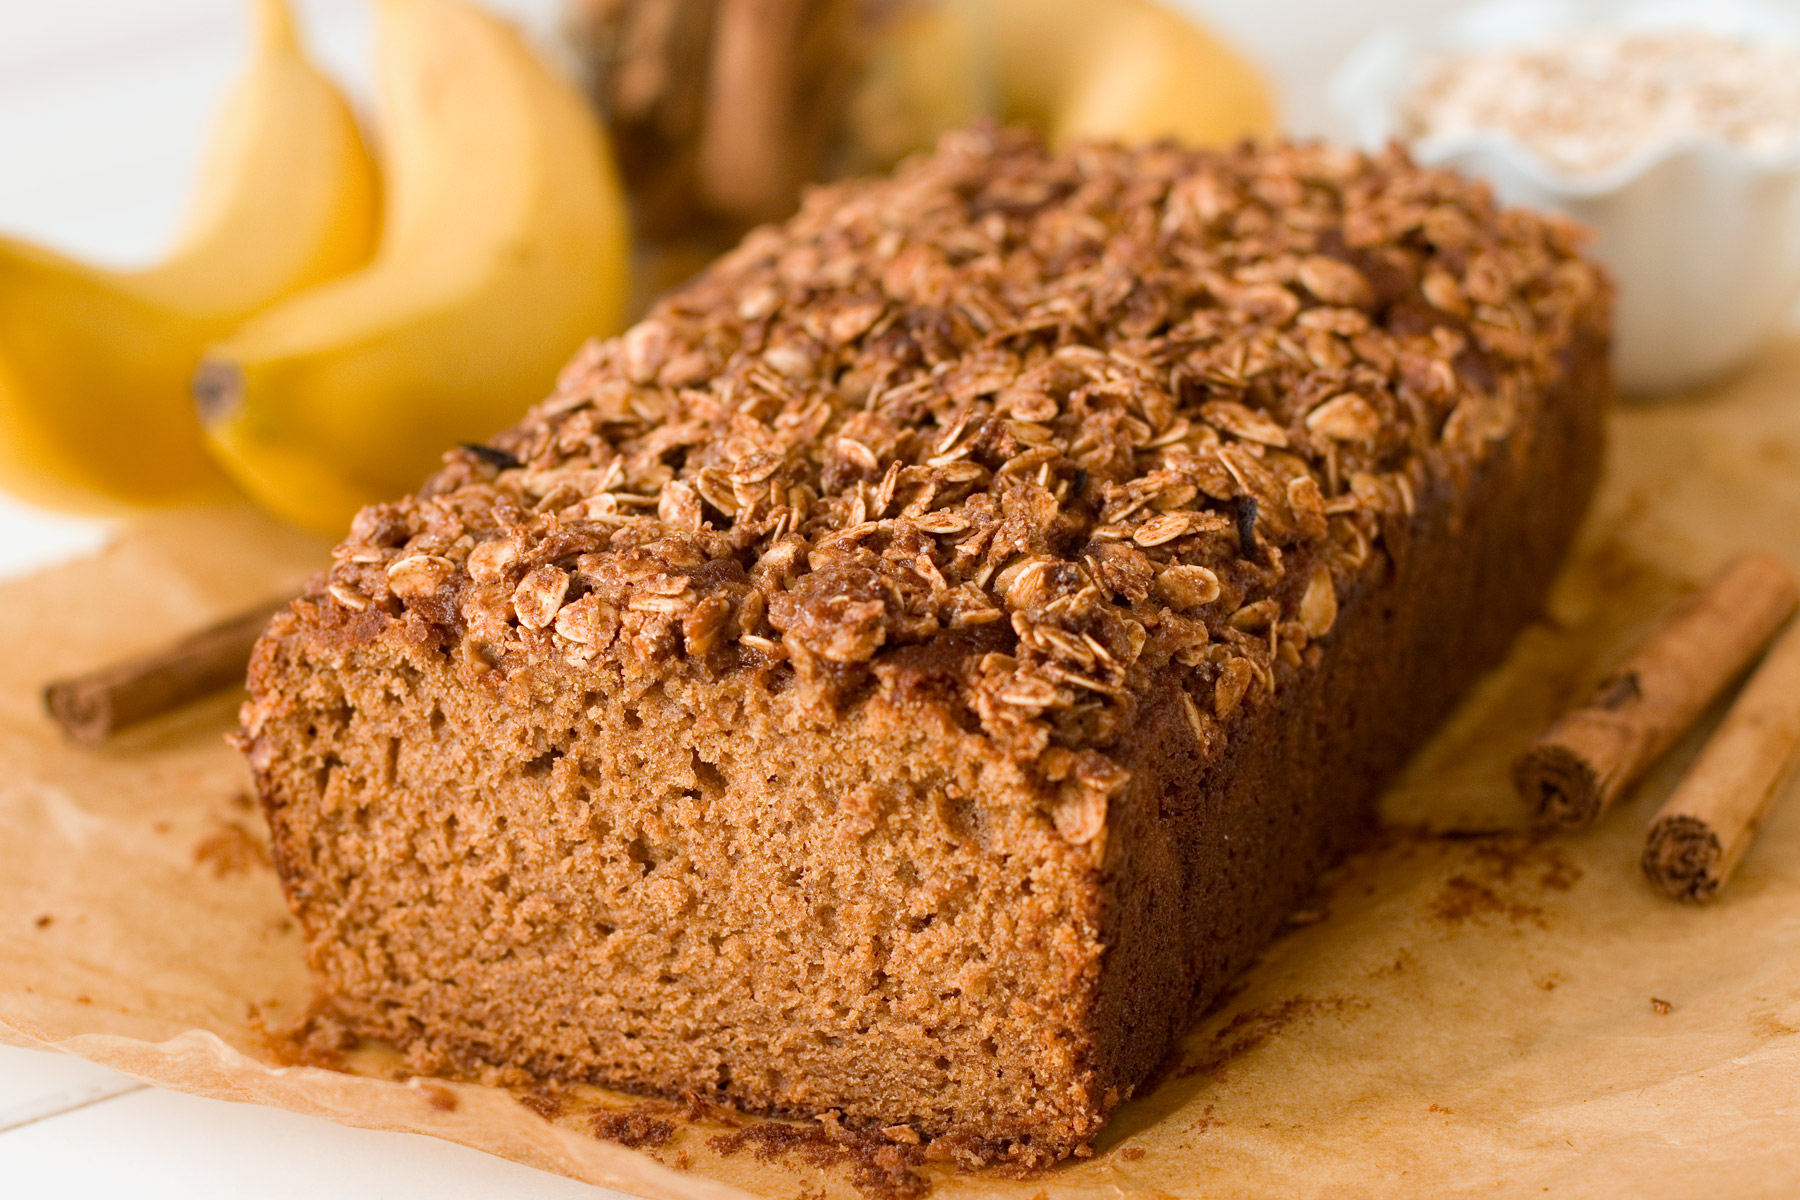 This healthier gluten free banana bread has the most amazing texture ...